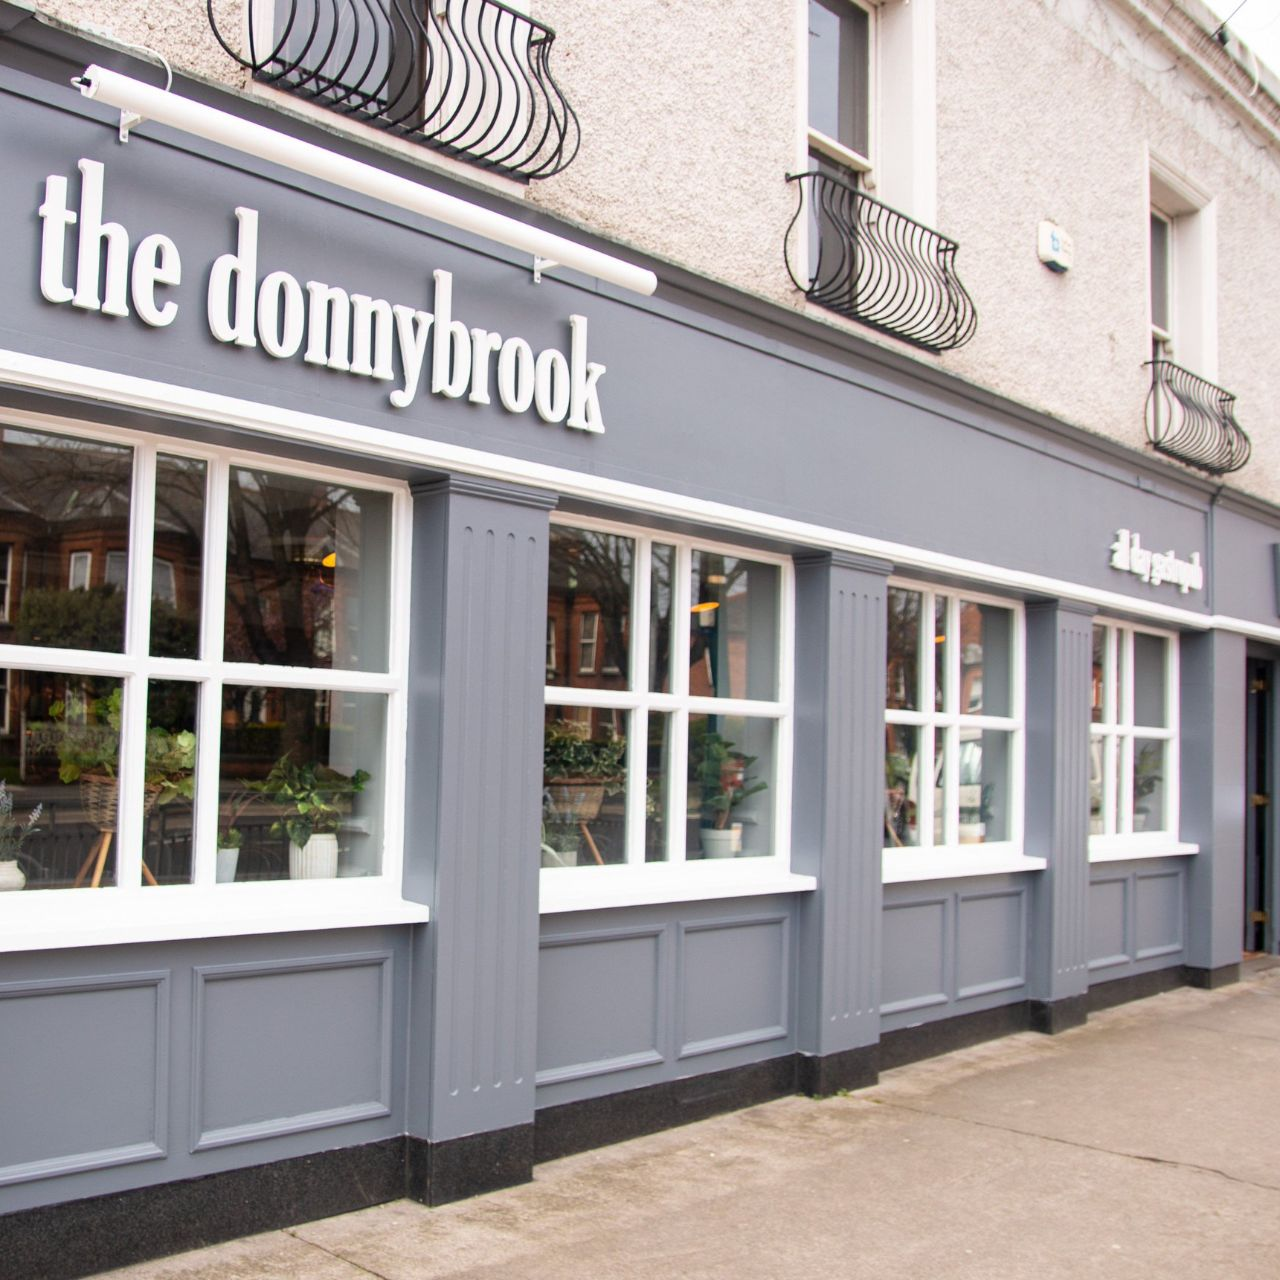 Modern love for classic Donnybrook redbrick, and a new price